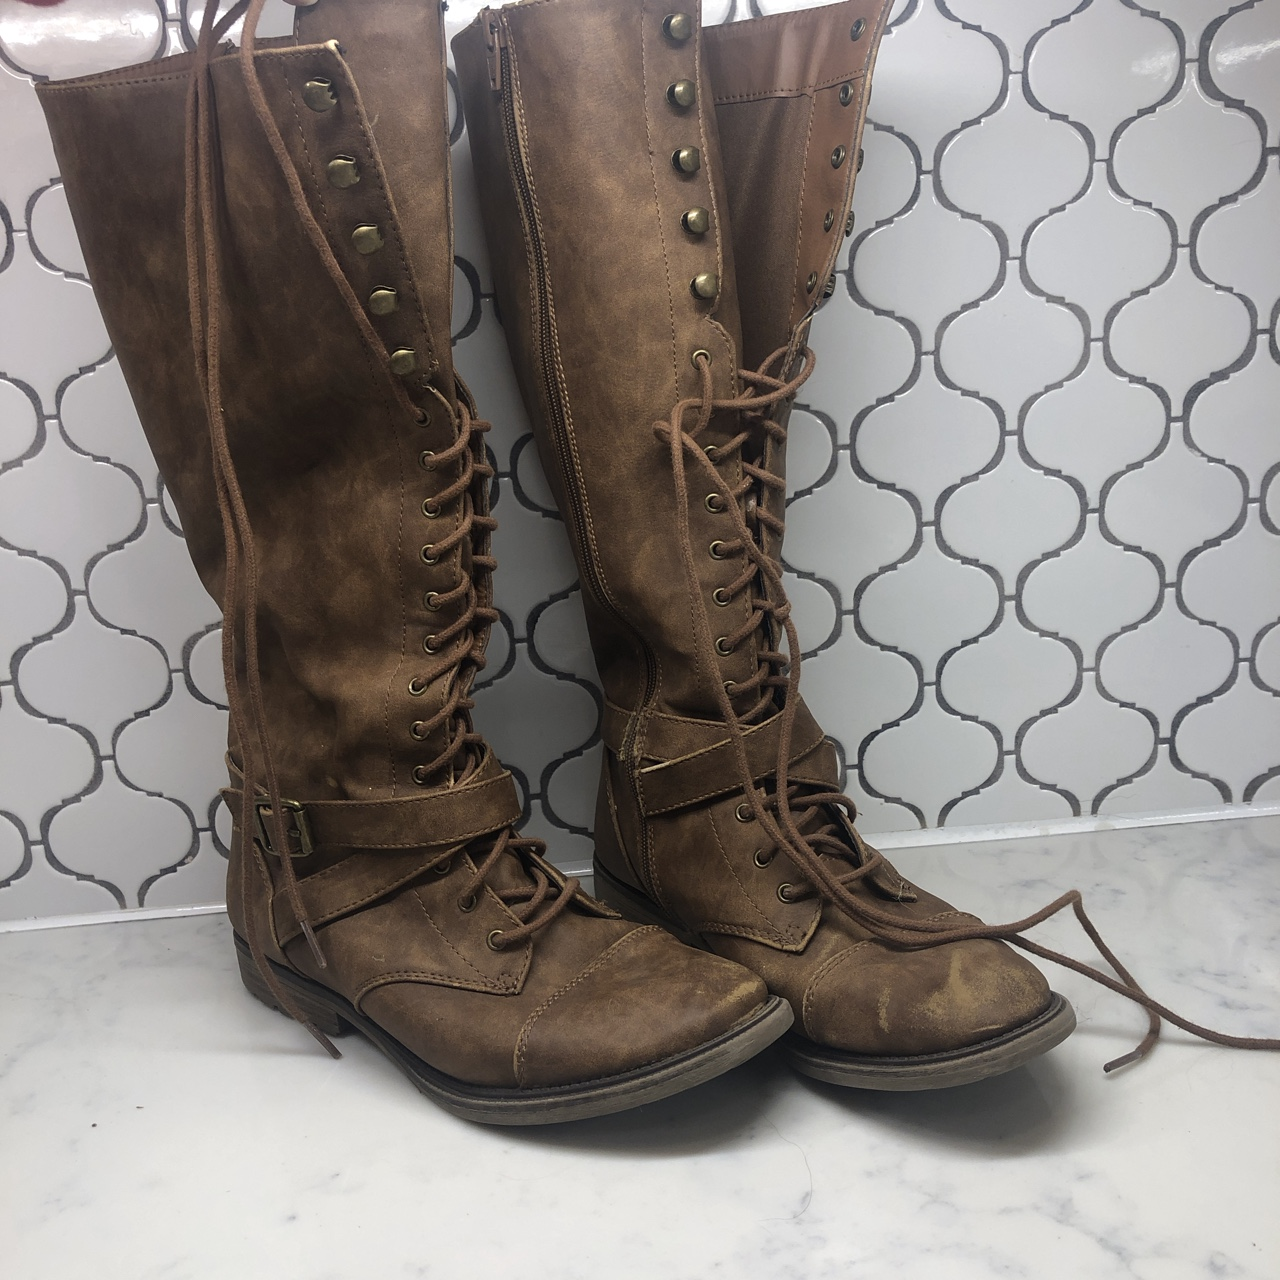 Target Mossimo Brown Lace Up Boots Come